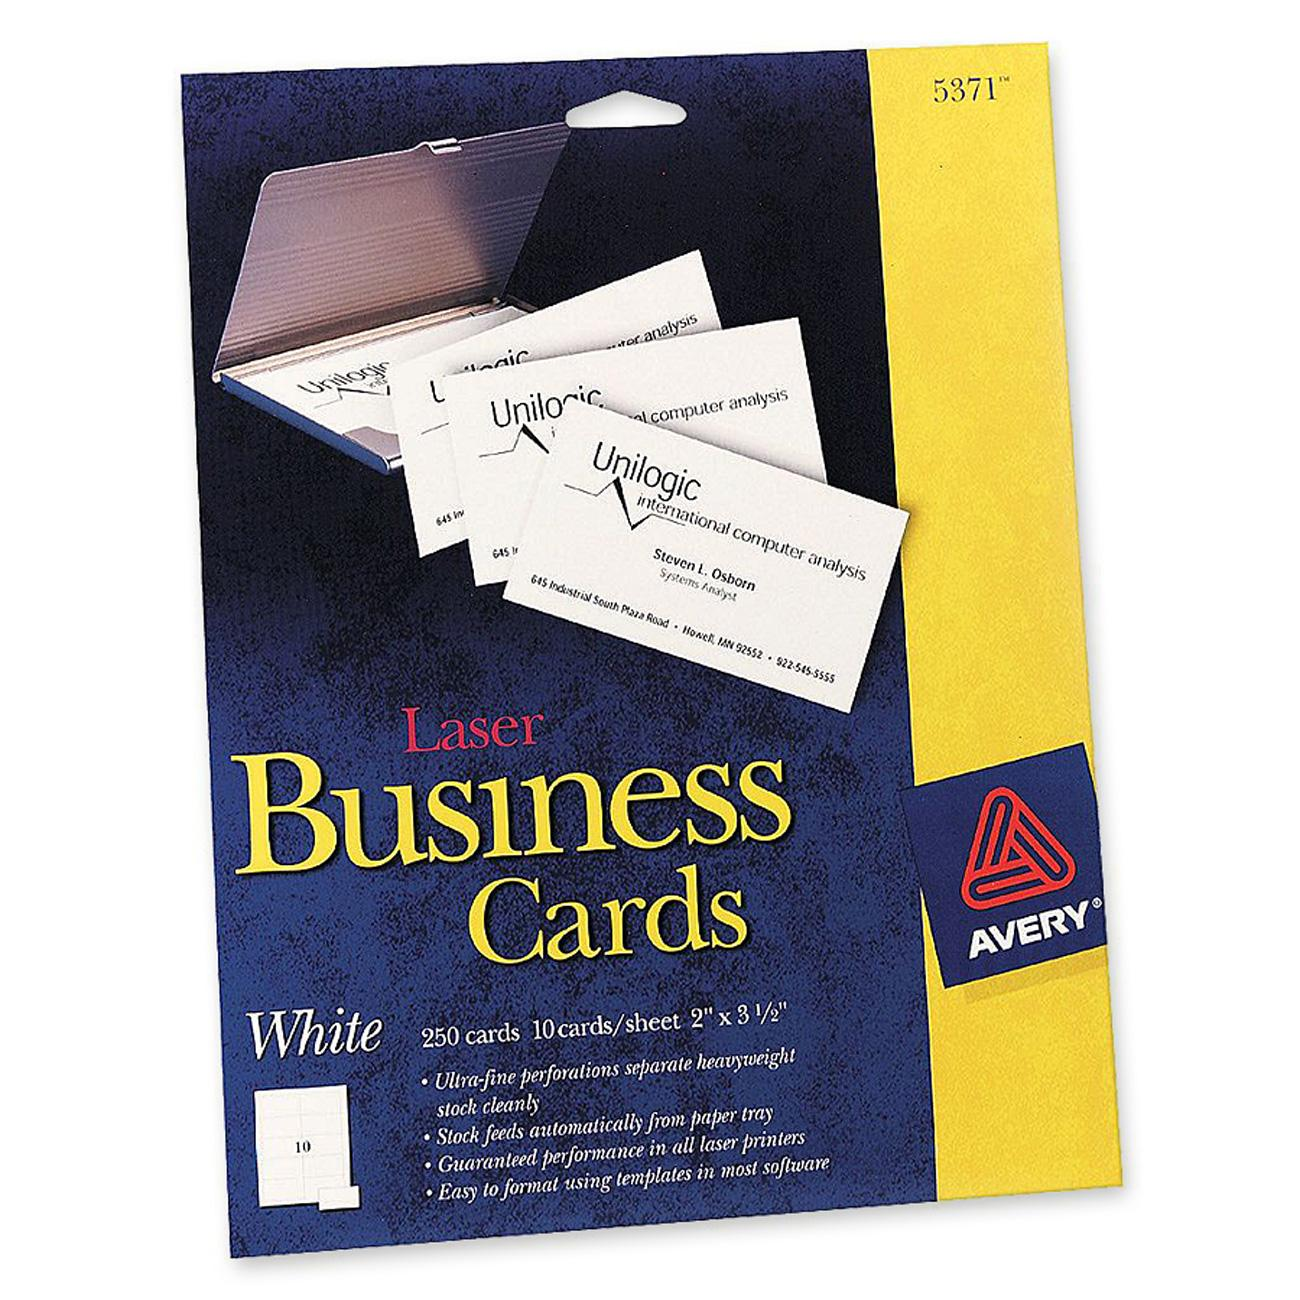 Laser perforated business card avery dennison 5371 ave5371 colourmoves